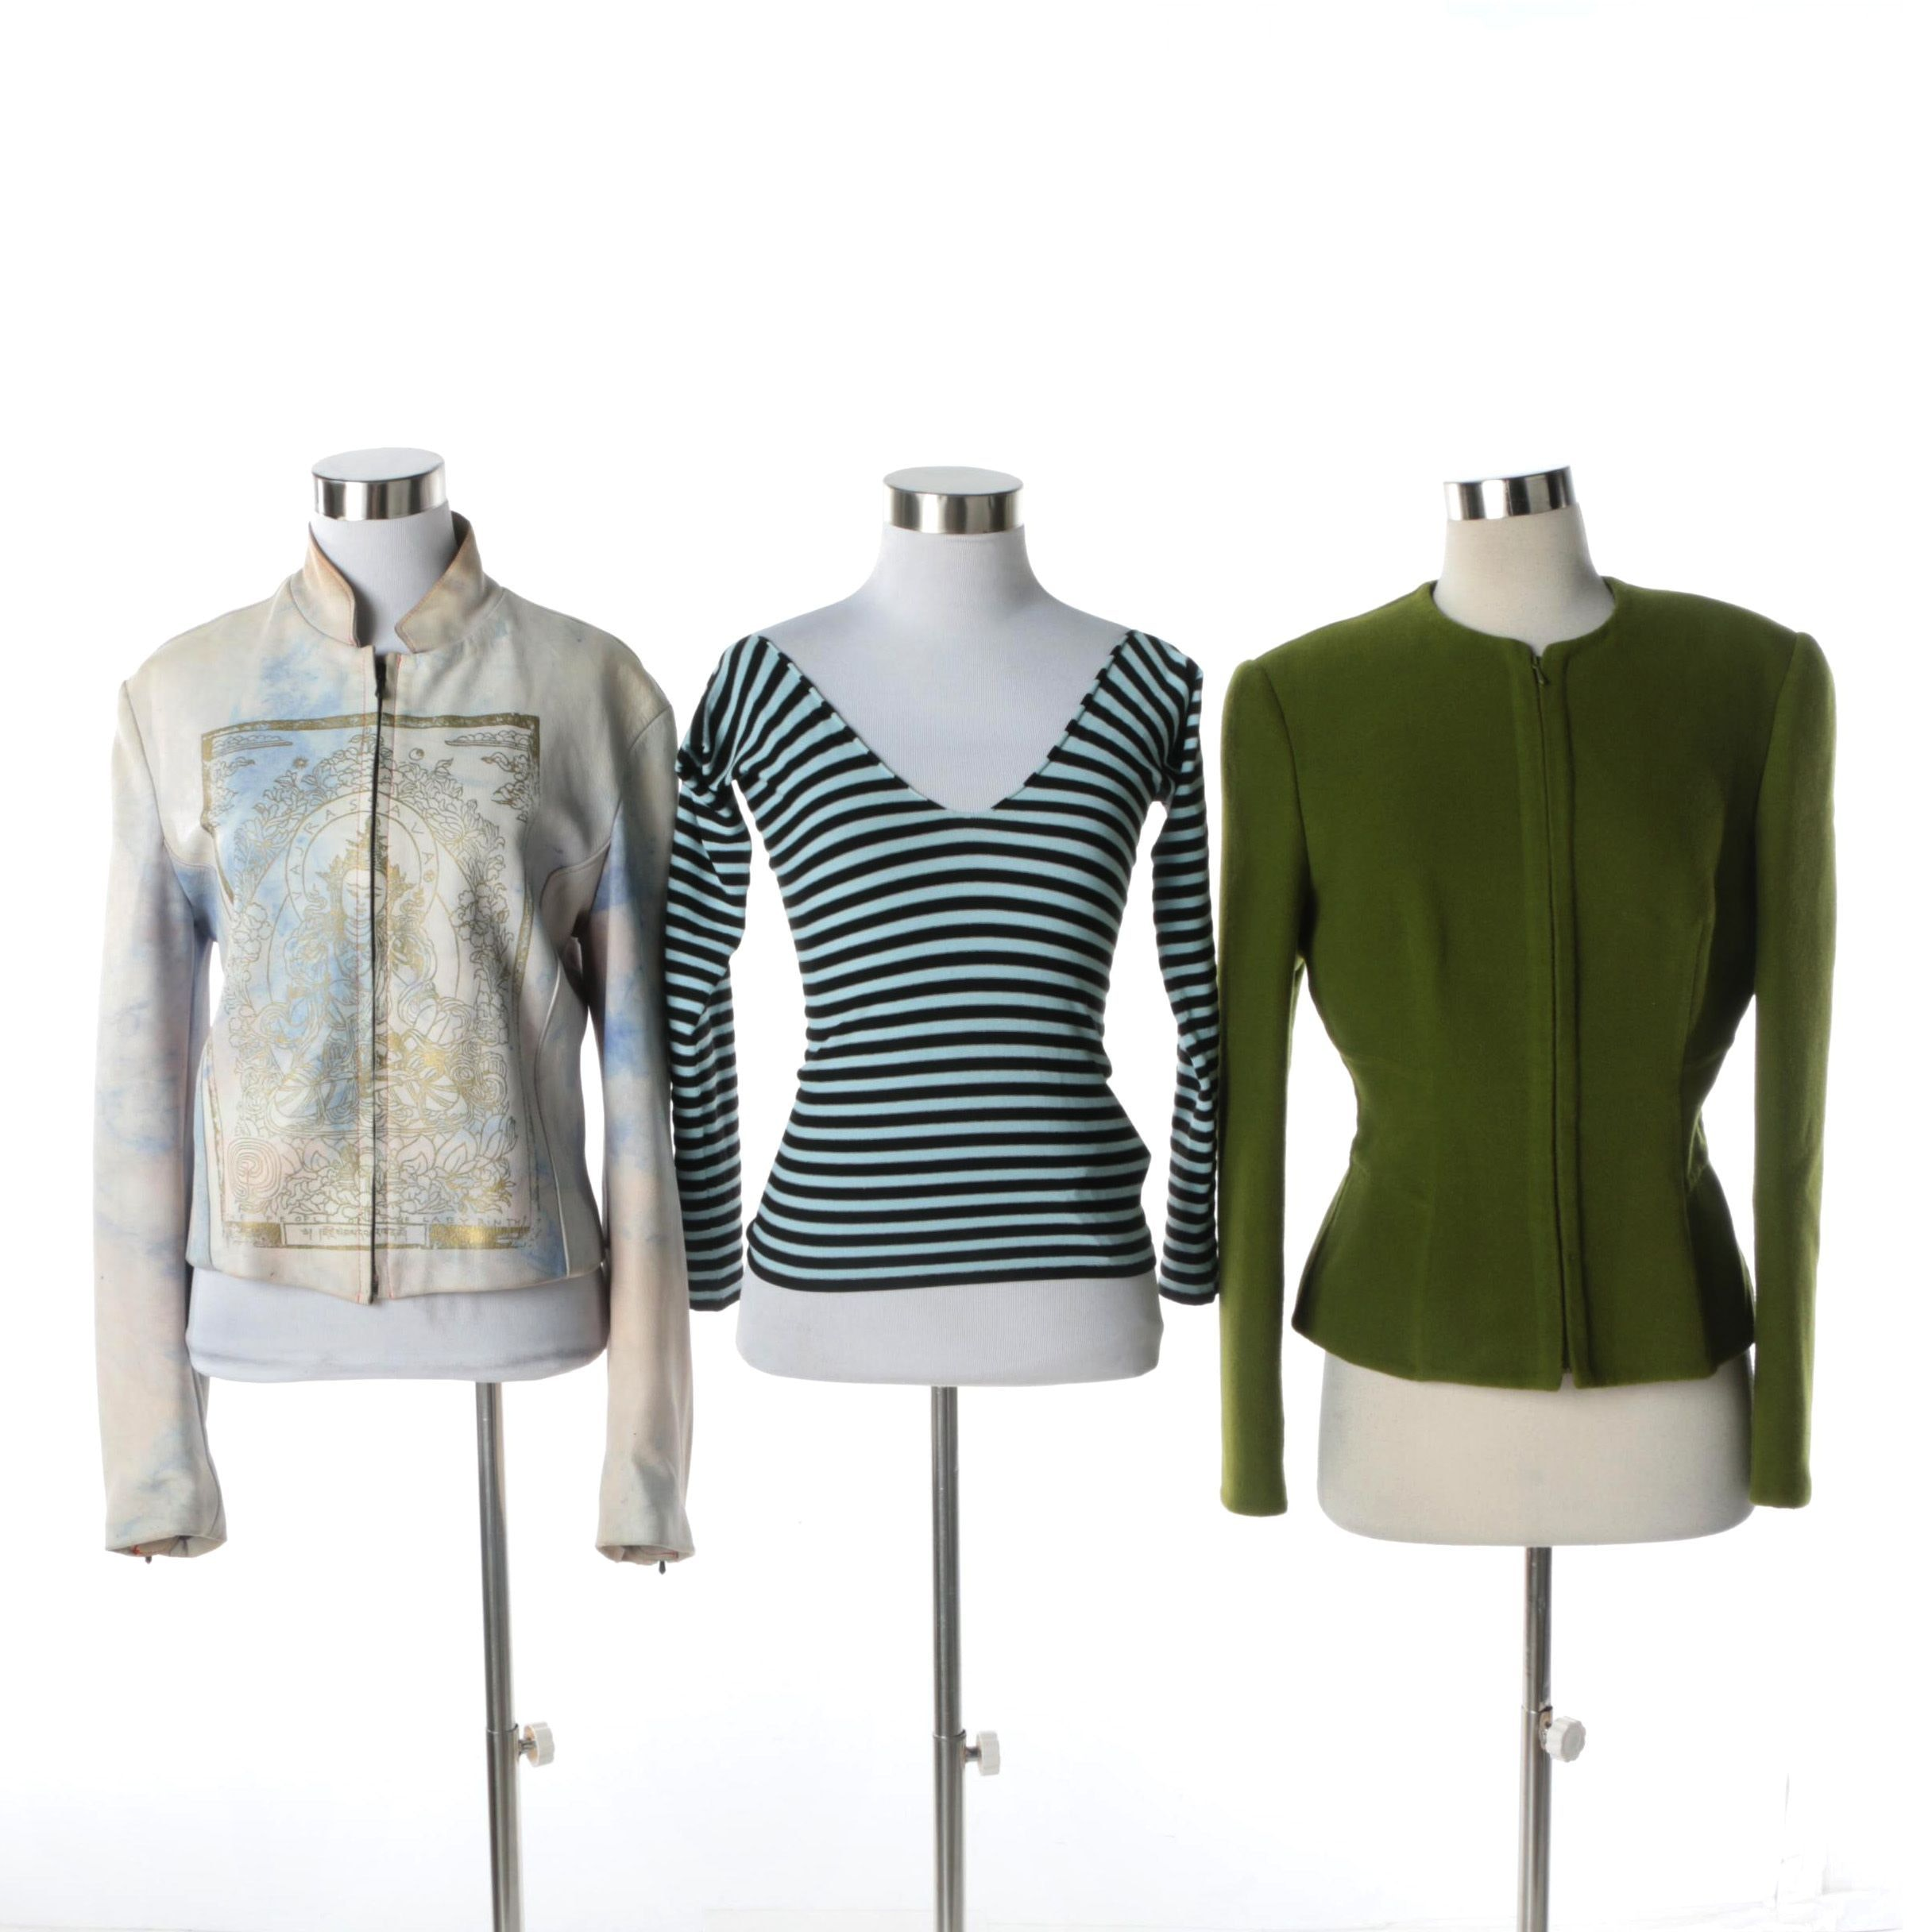 Women's Jackets and Sweater Including Giorgio Armani